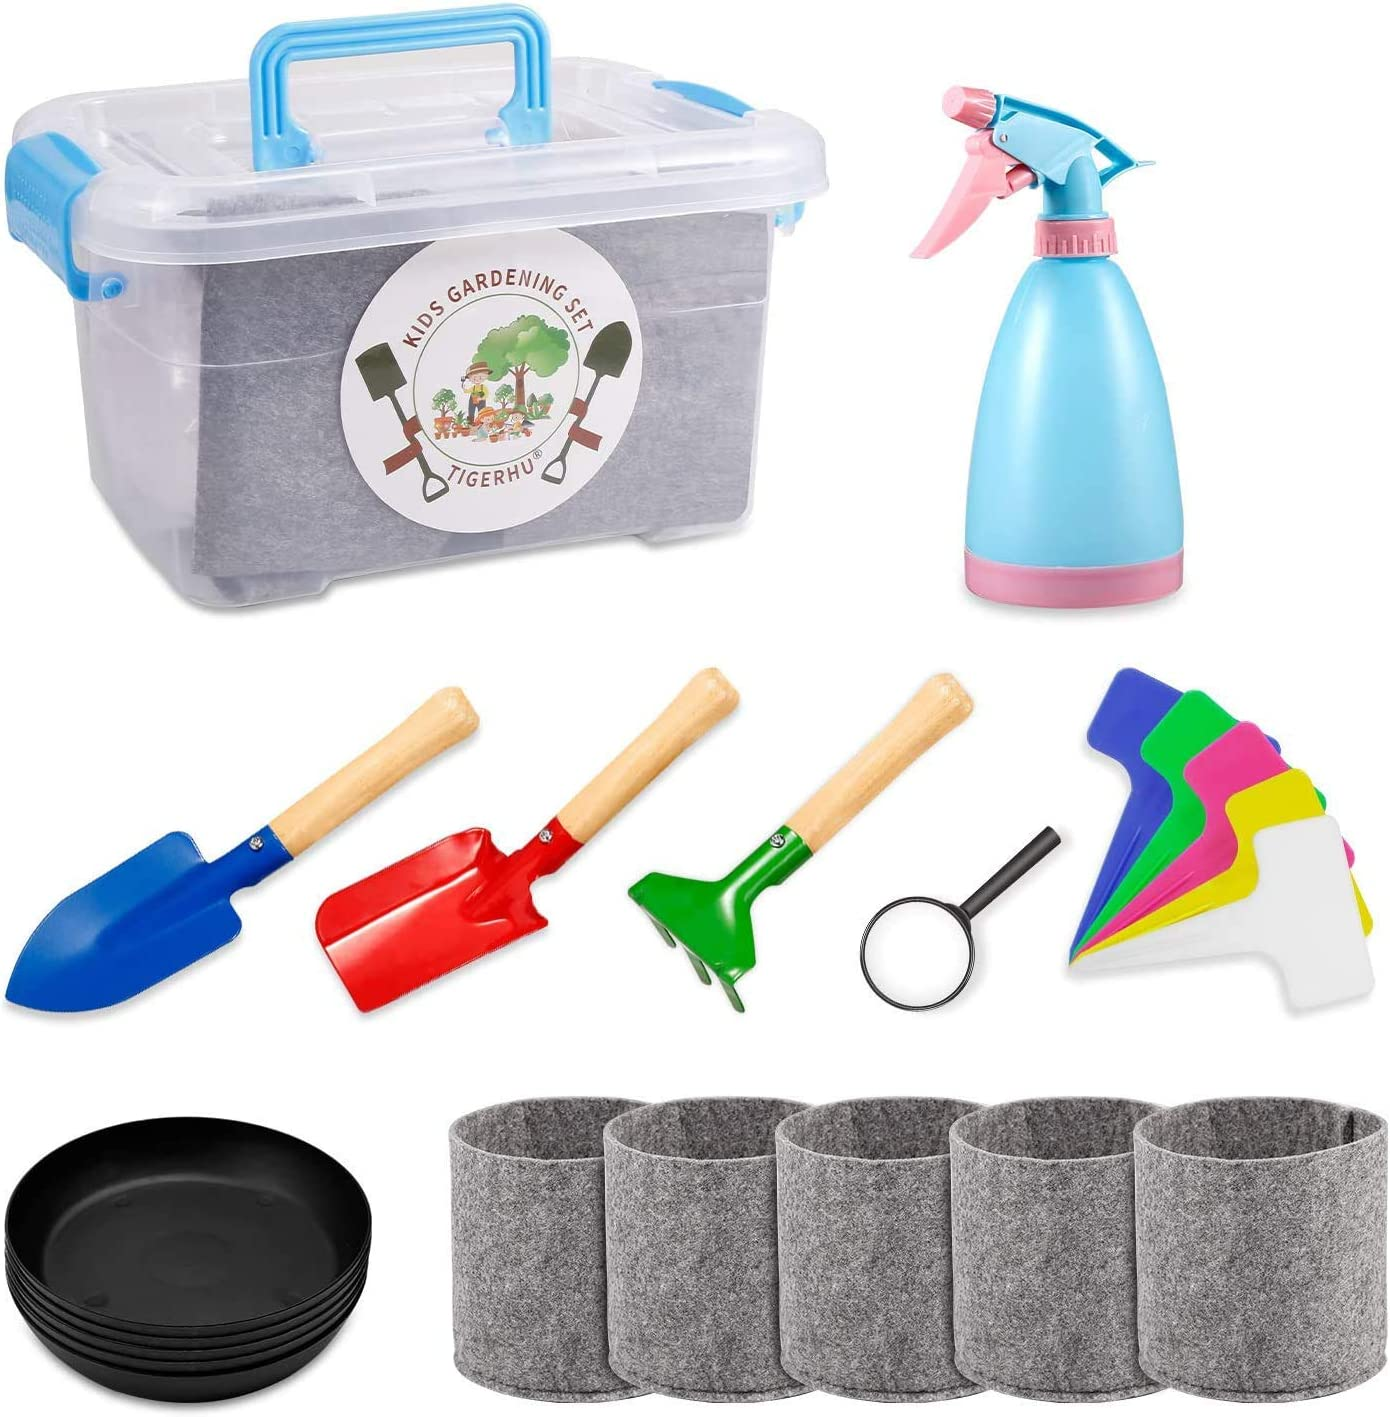 Tigerhu Kids Gardening Tools - Garden Tools Set - Kids Metal, Includes Sturdy Storage Box, Watering Can, Shovels, Rake, Stakes, Magnifier, Tray, Planting Bag, and 5pcs Plant Labels. All in One Set